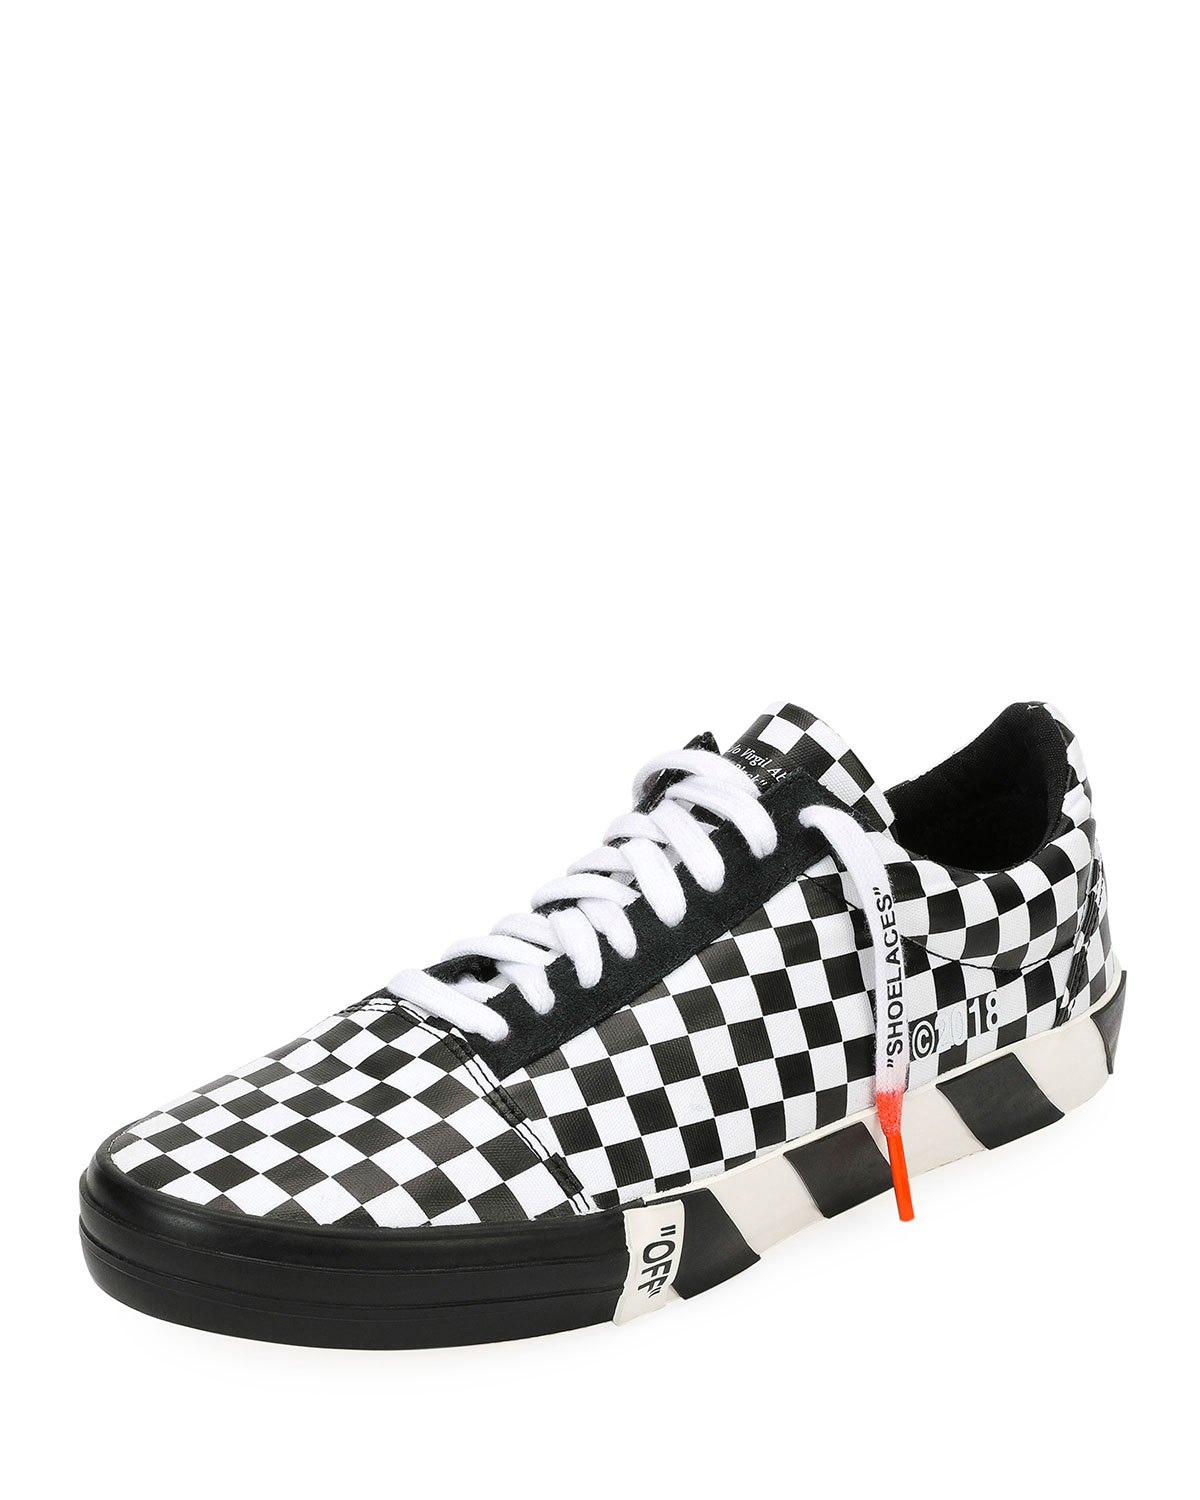 Off-White Men's Vulc Checkered Low-Top